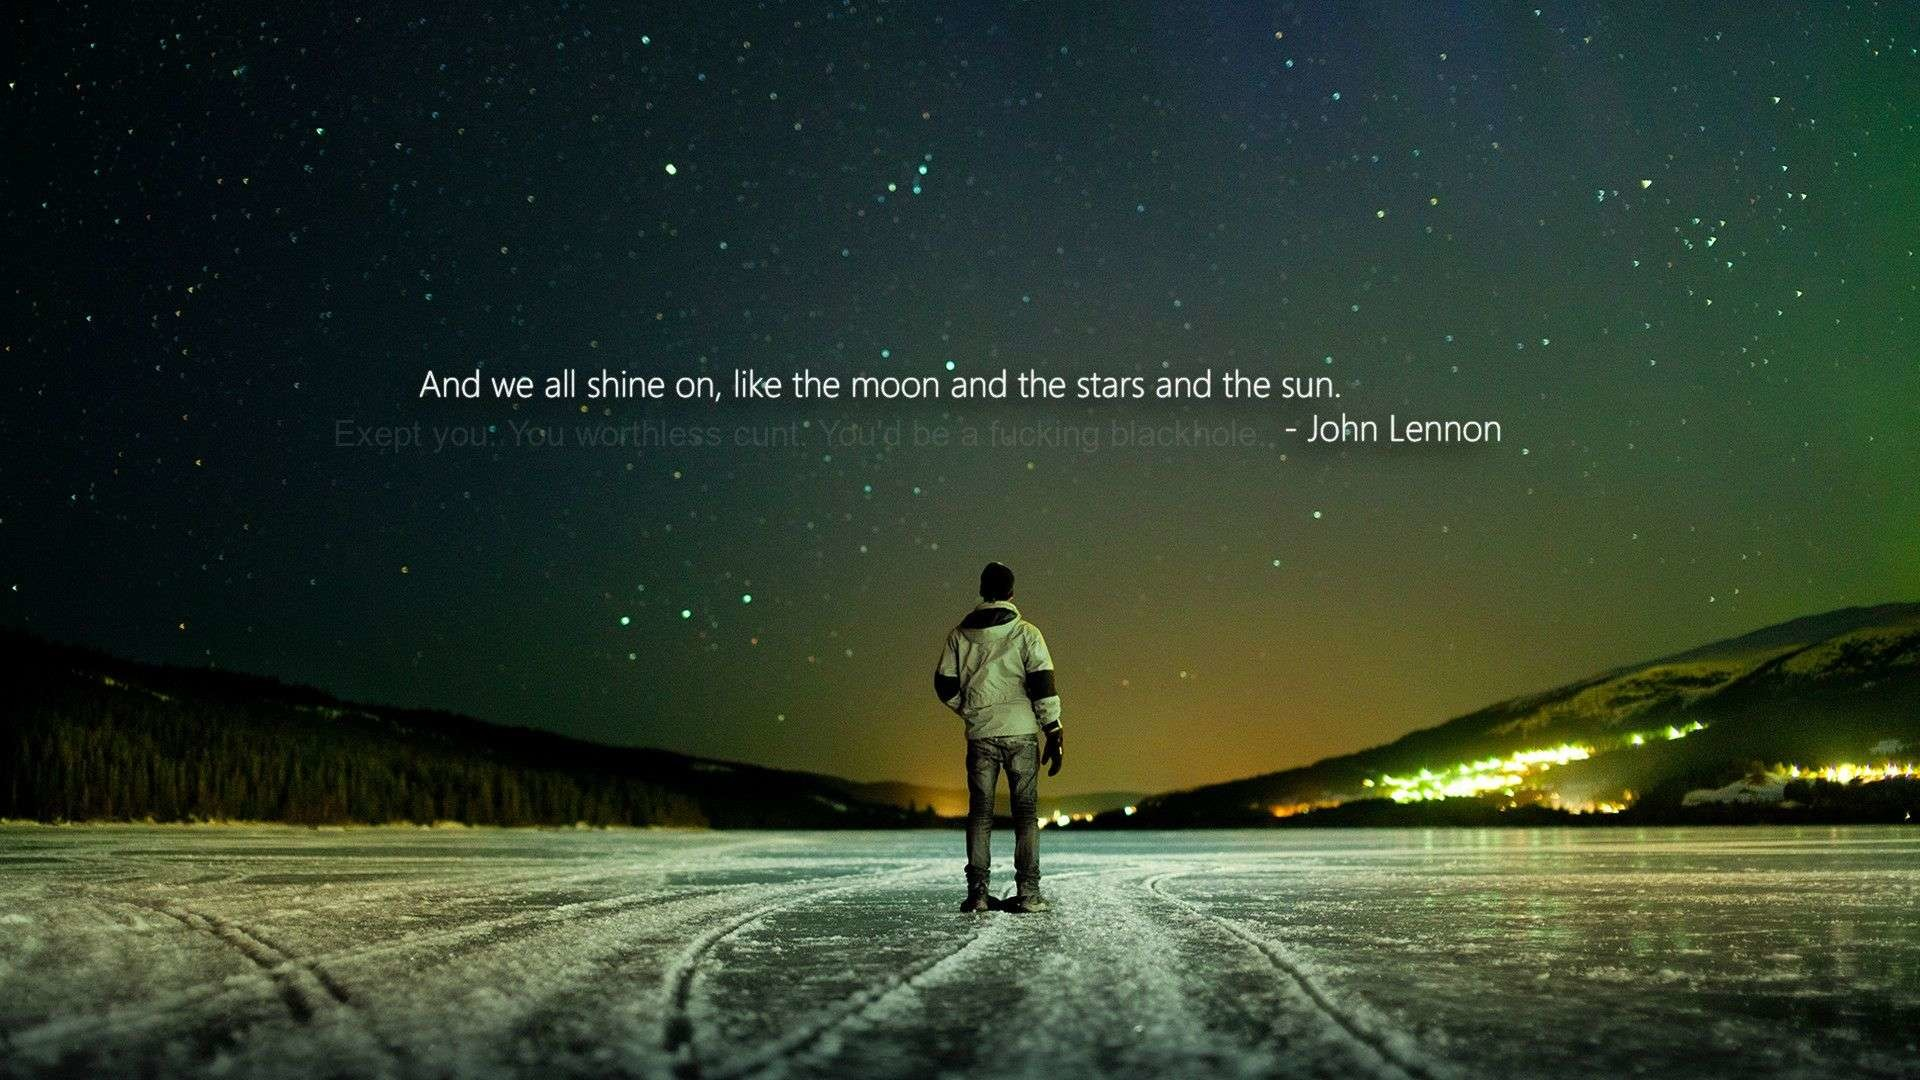 inspirational space wallpaper id: 91085 / Source